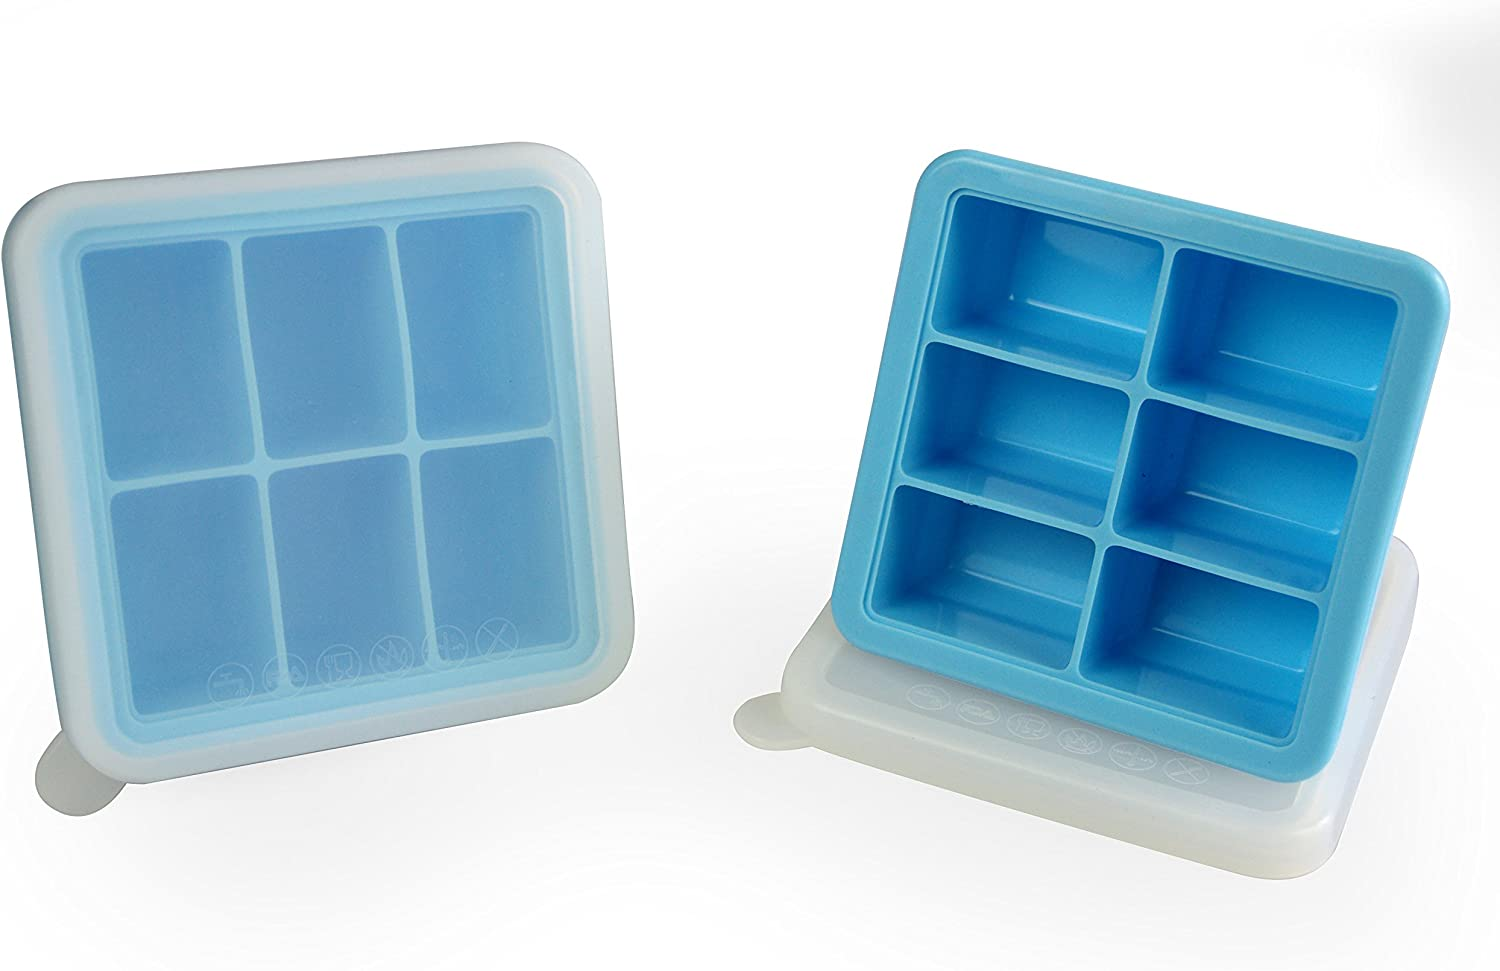 Mirenlife 6 Cube Premium Silicone Ice Cube Tray with Lid